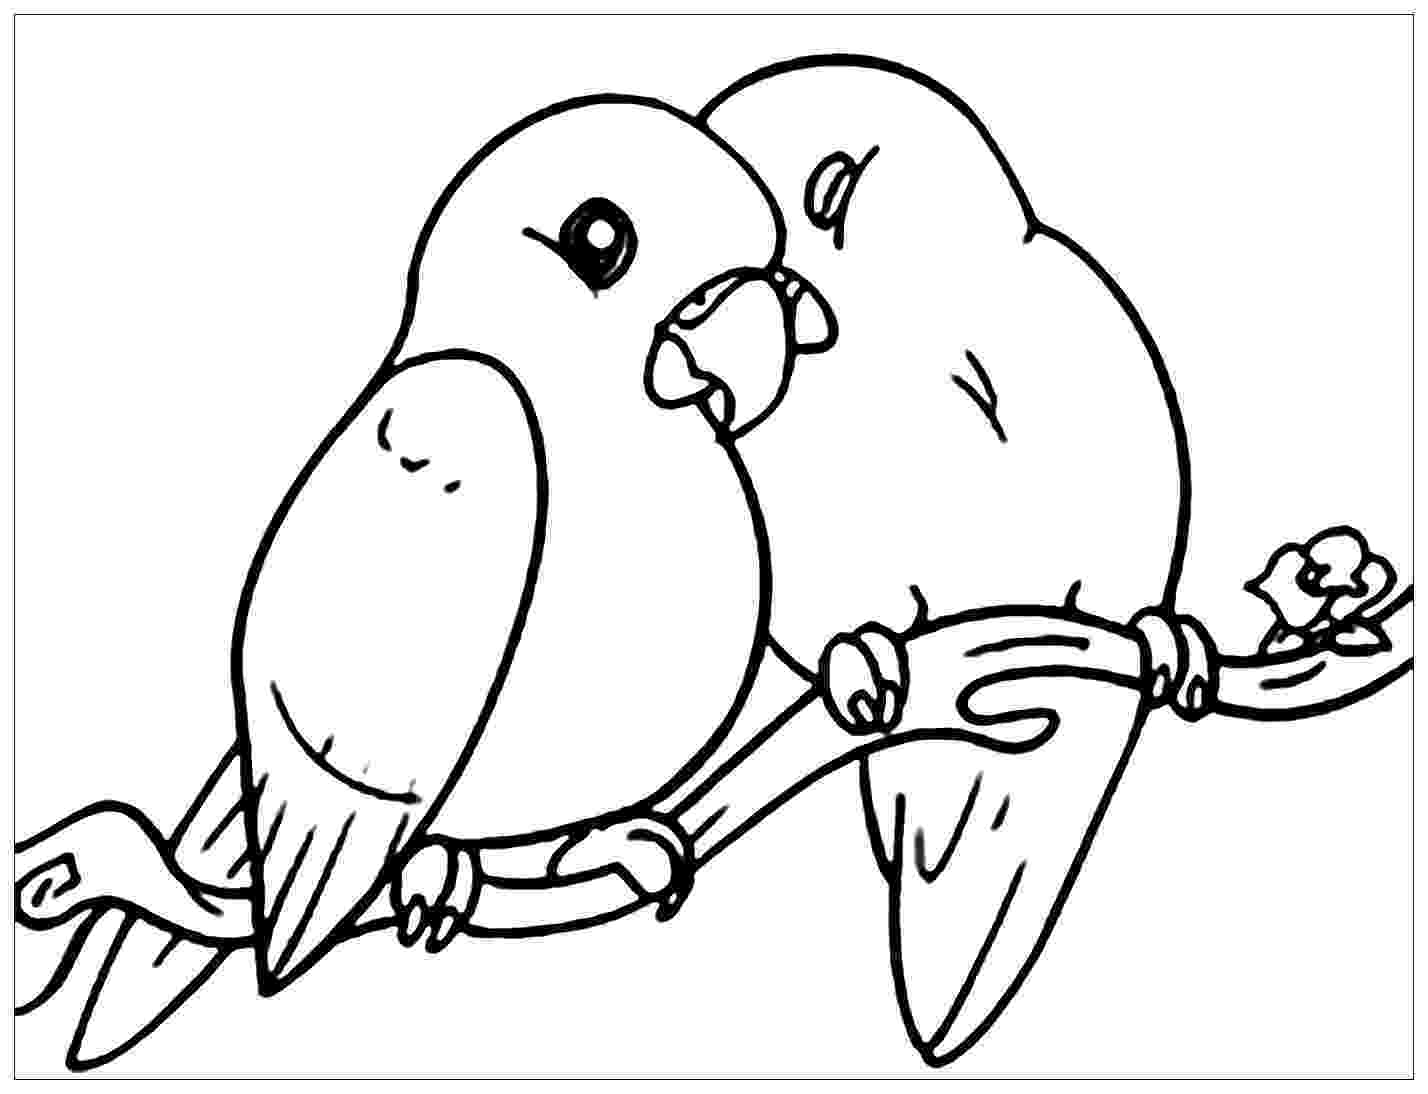 bird colouring pages for kids birds for children birds kids coloring pages for colouring pages bird kids